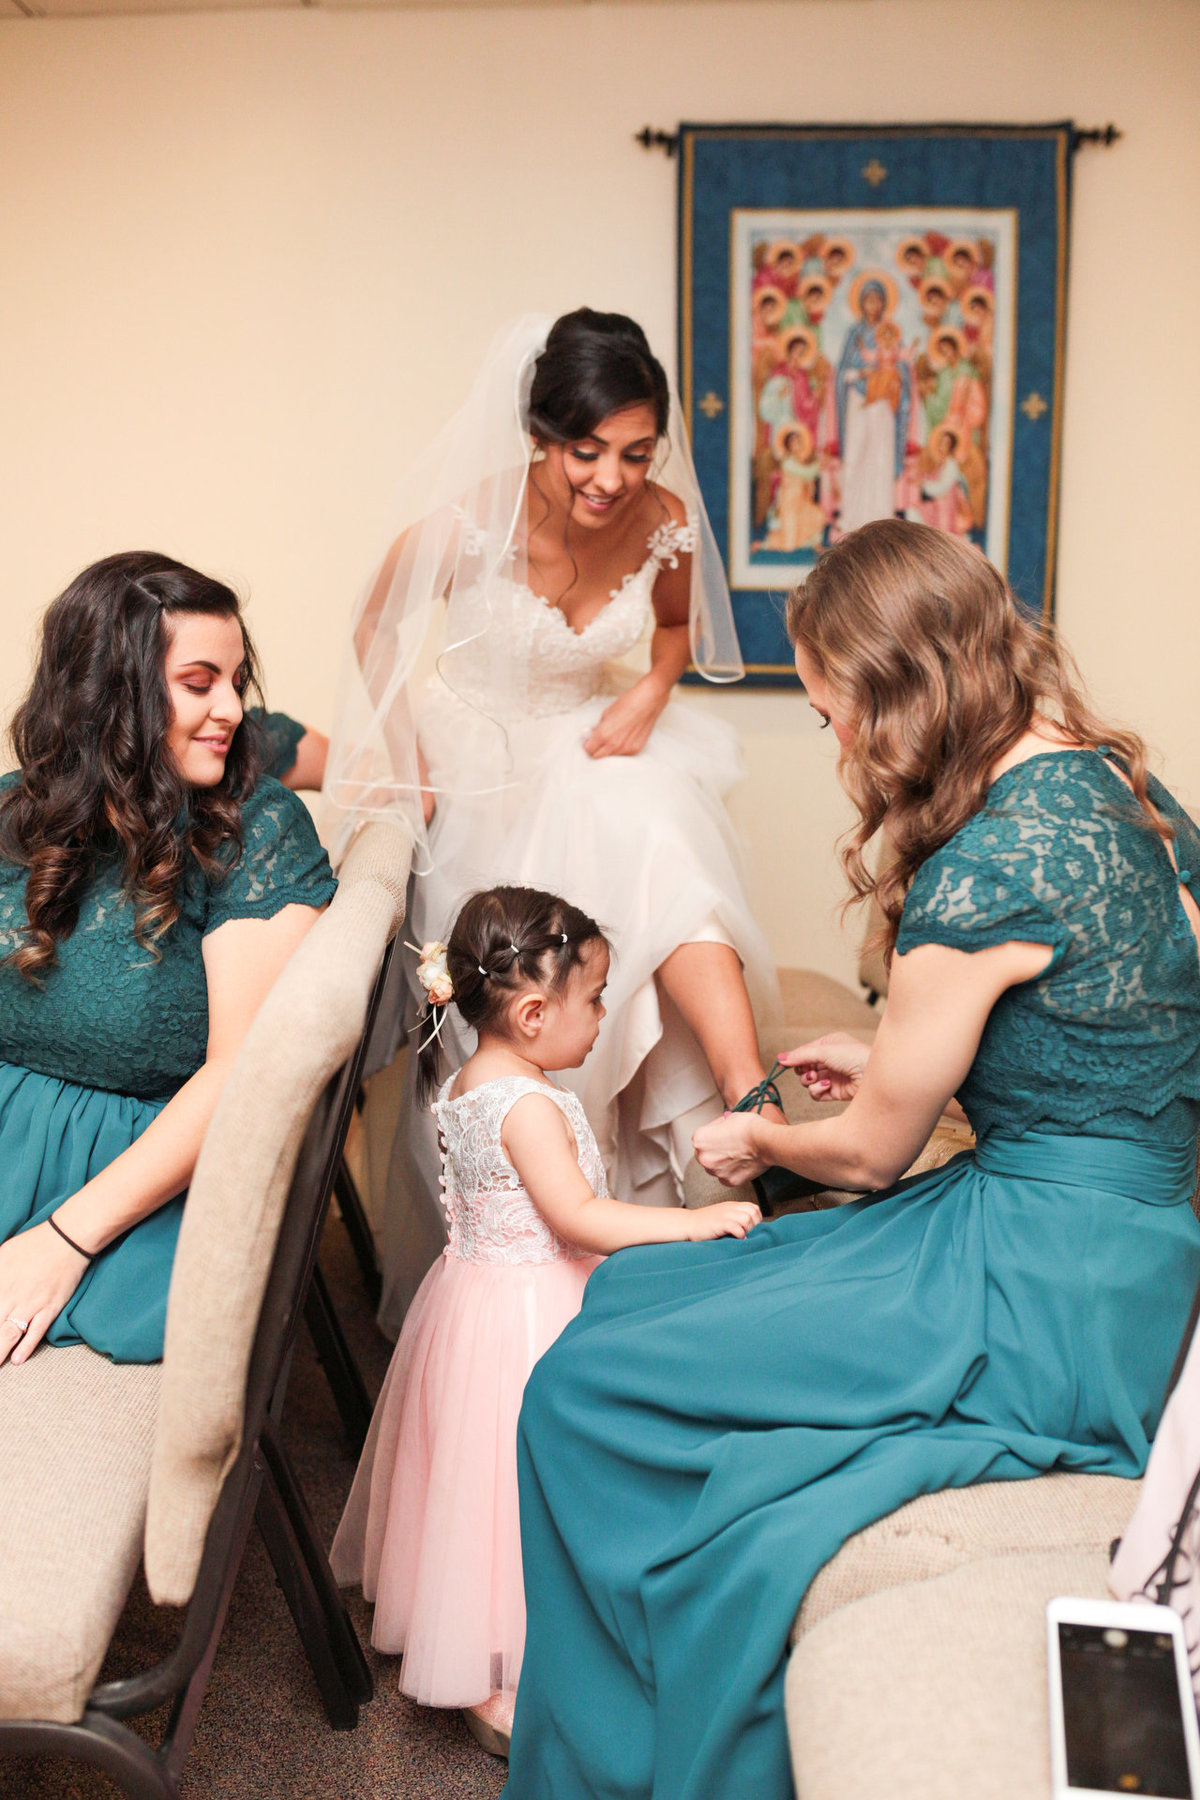 Albuquerque Wedding Photographer_Our Lady of the Annunciation Parish_www.tylerbrooke.com_009